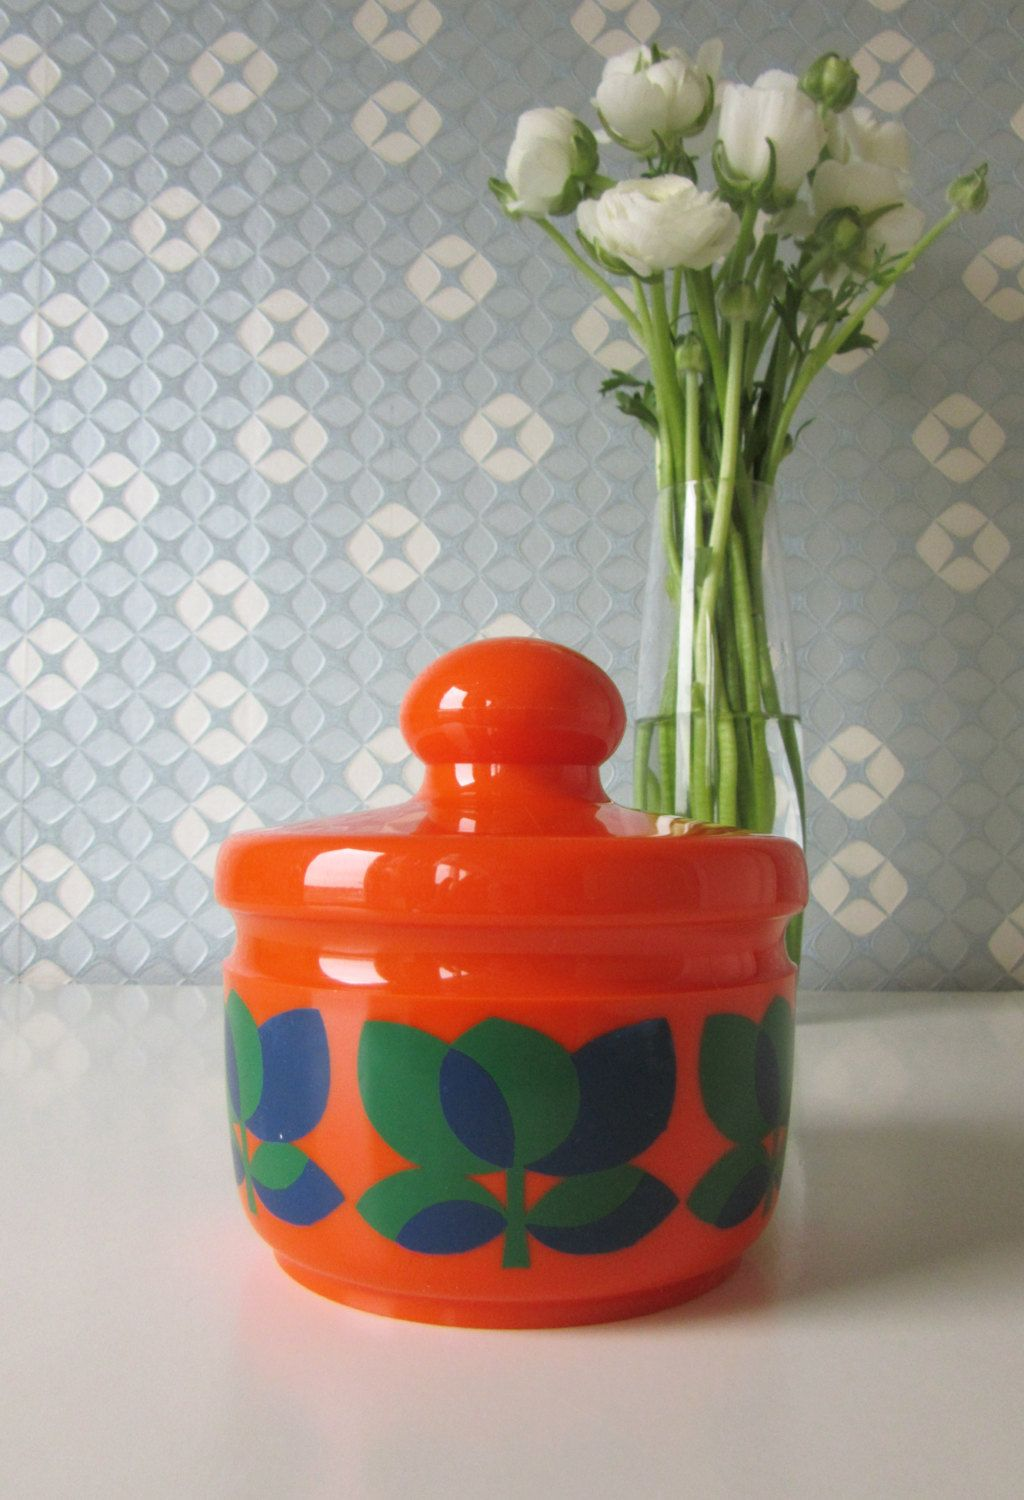 Vintage Plastic Orange, Green and Blue Container Bologna made by Emsa W-Germany 70s door Vantoen op Etsy